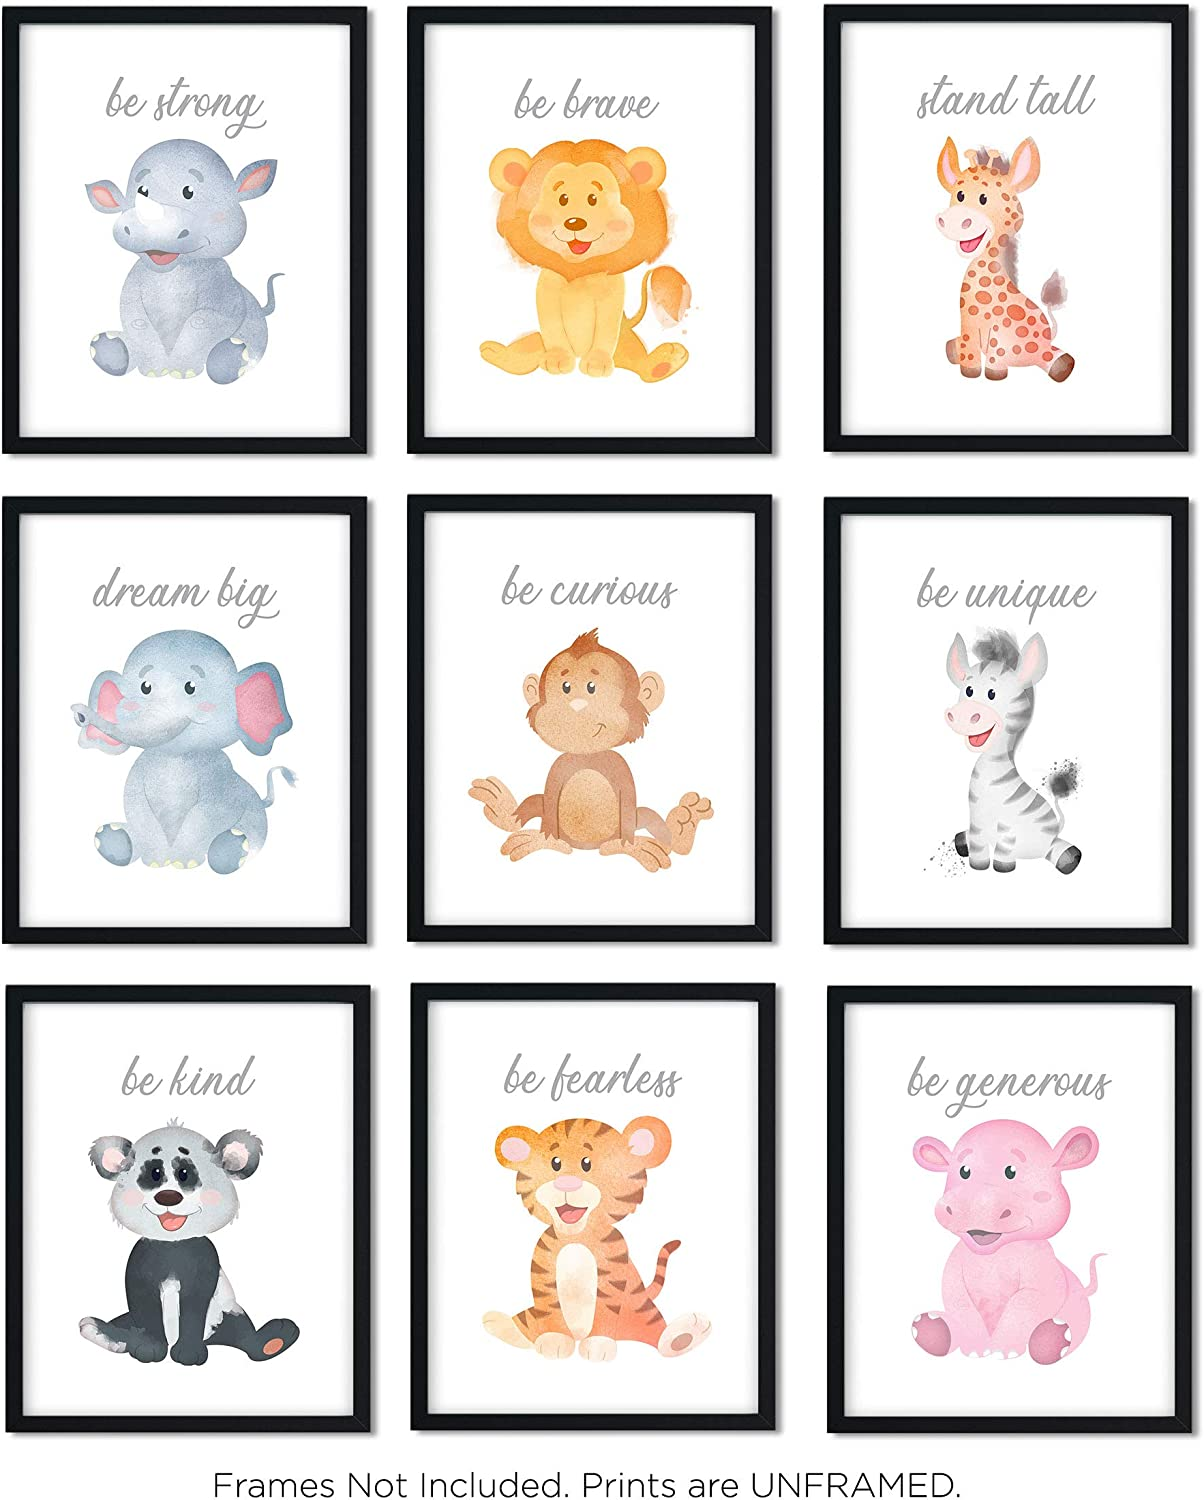 Safari Baby Animals | Nursery Décor | Baby Room Décor | Playroom Wall Art Decor Prints | Boys & Girls Room | Kids Bedroom | Set of 9 (UNFRAMED 8 x 10) Prints